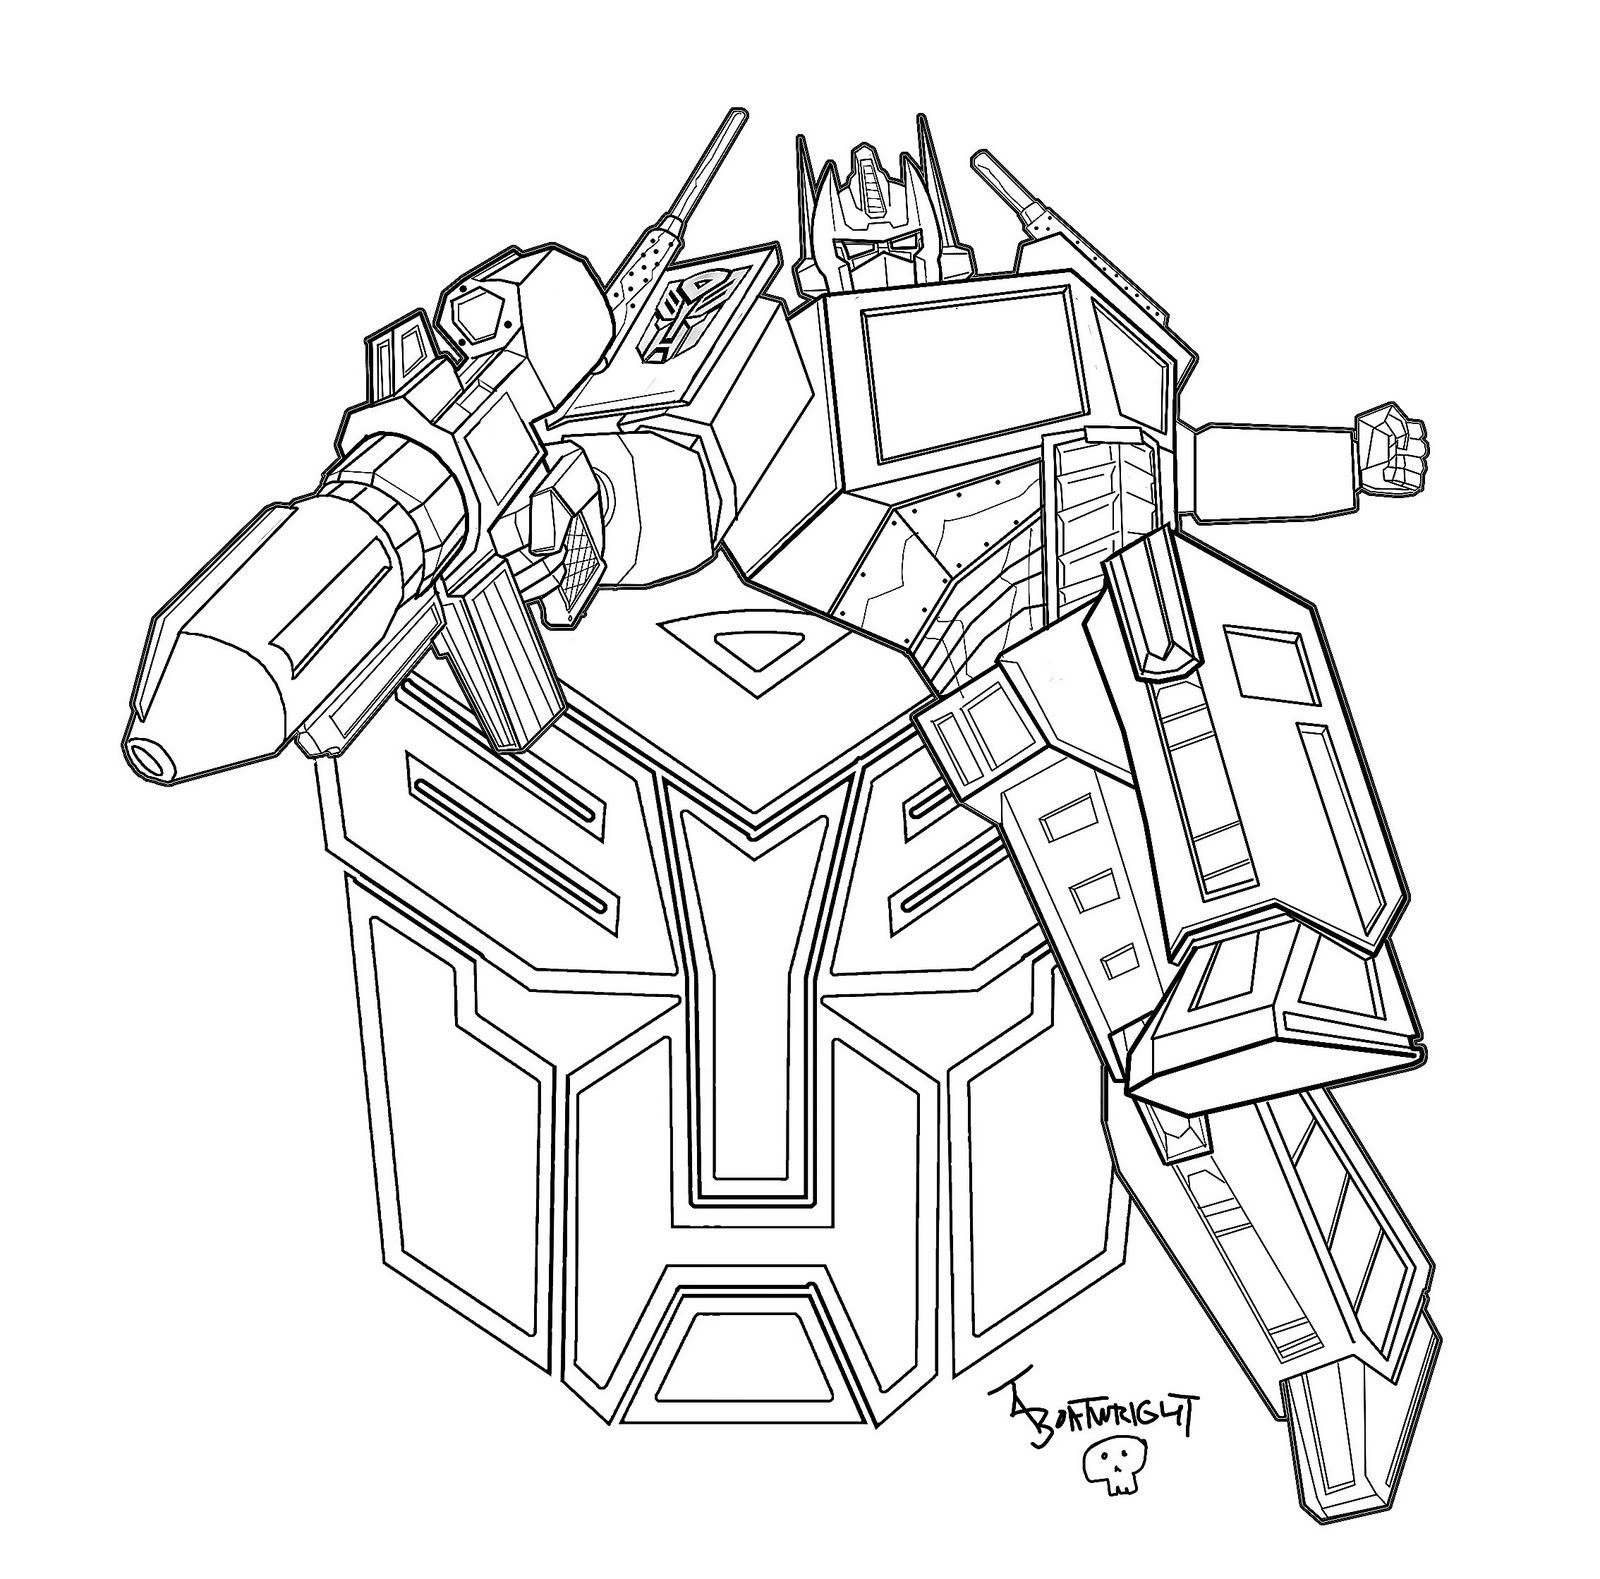 Transformers drawing pages - Optimus Prime Transformers Coloring Pages Disney Coloring Pages